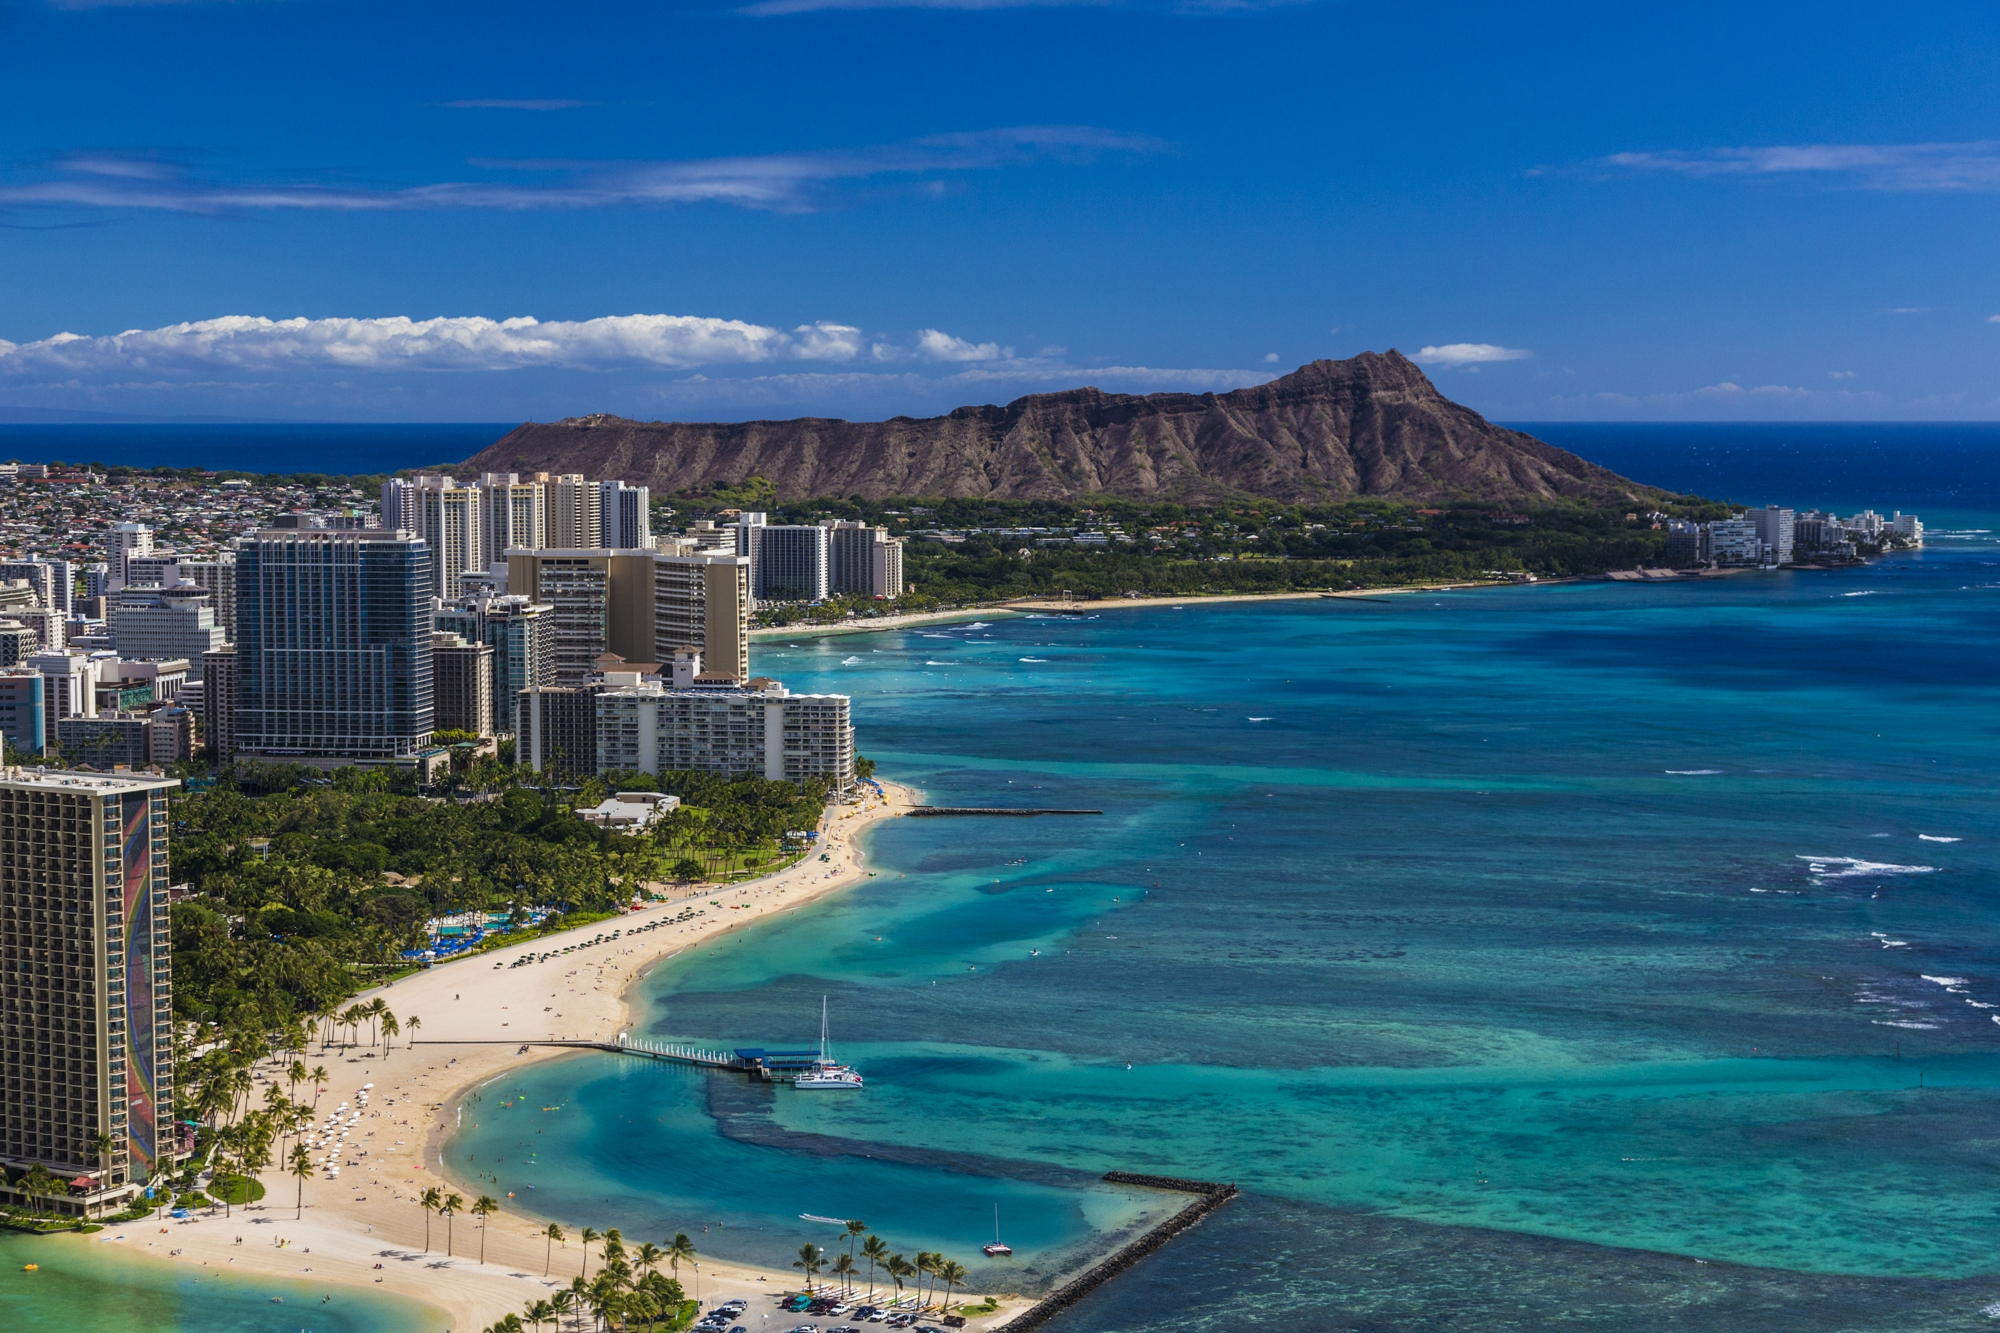 5-day Honolulu City & Mini-Circle Island, Pearl Harbor, Polynesian Cultural Center Tour Package from Honolulu